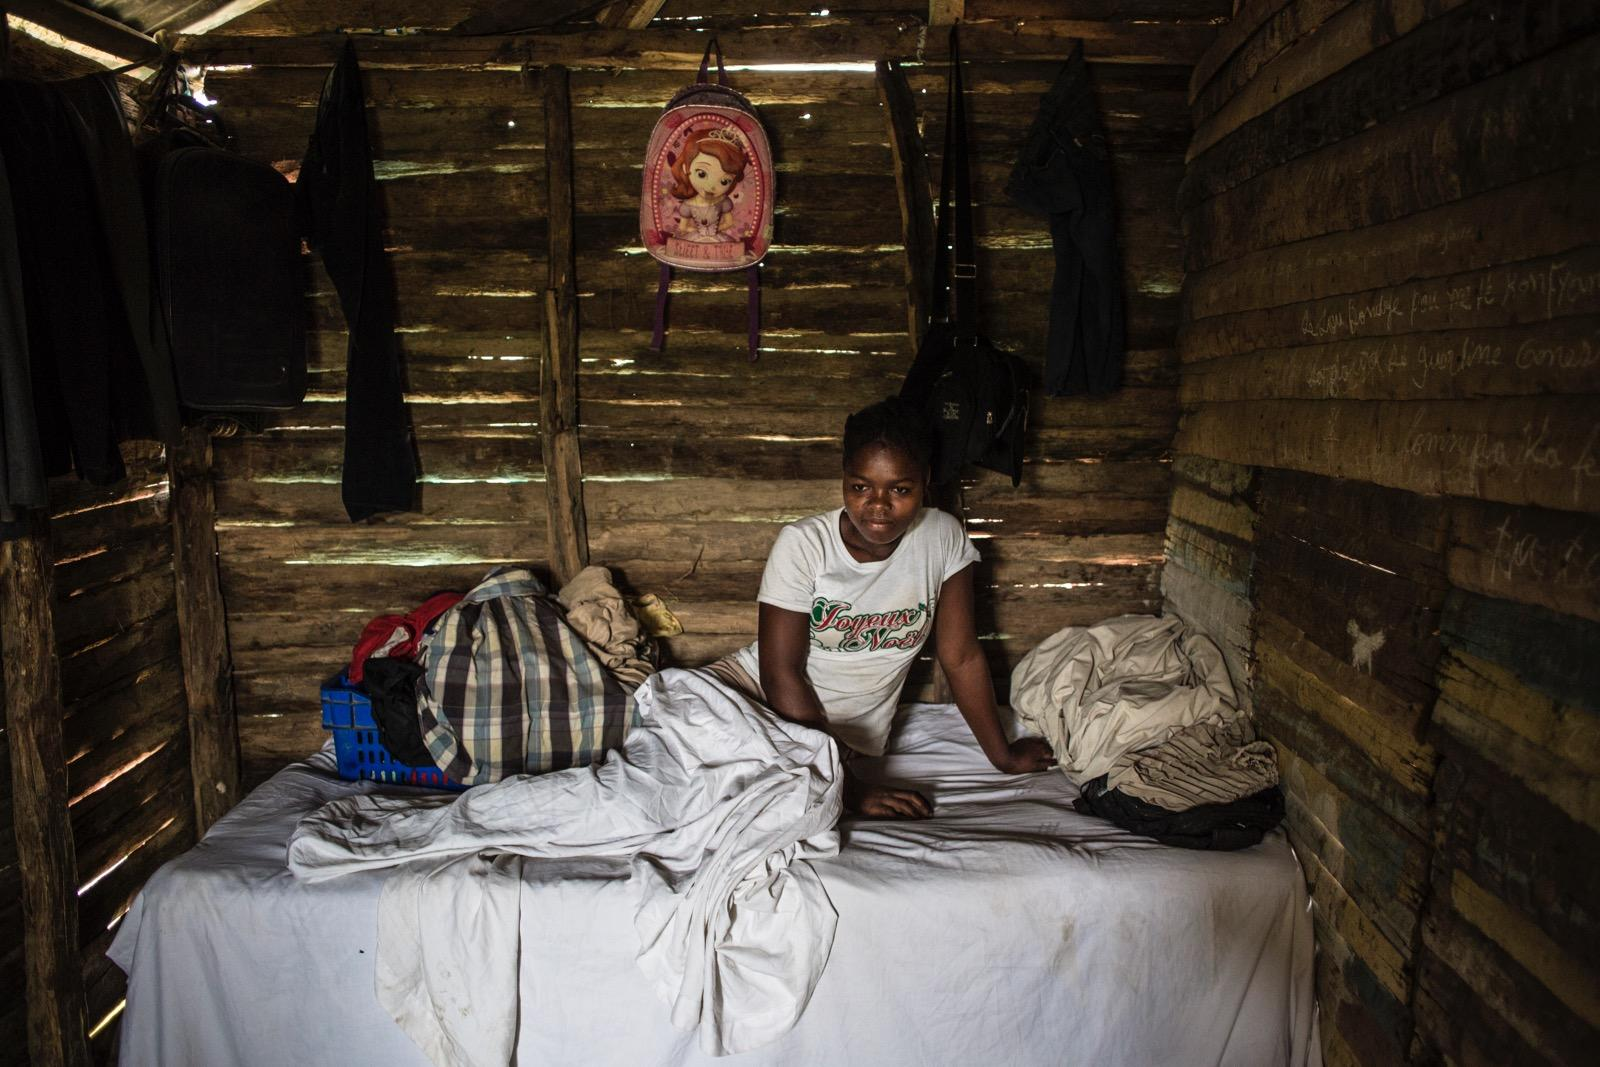 A girl in a bed inside a hut.